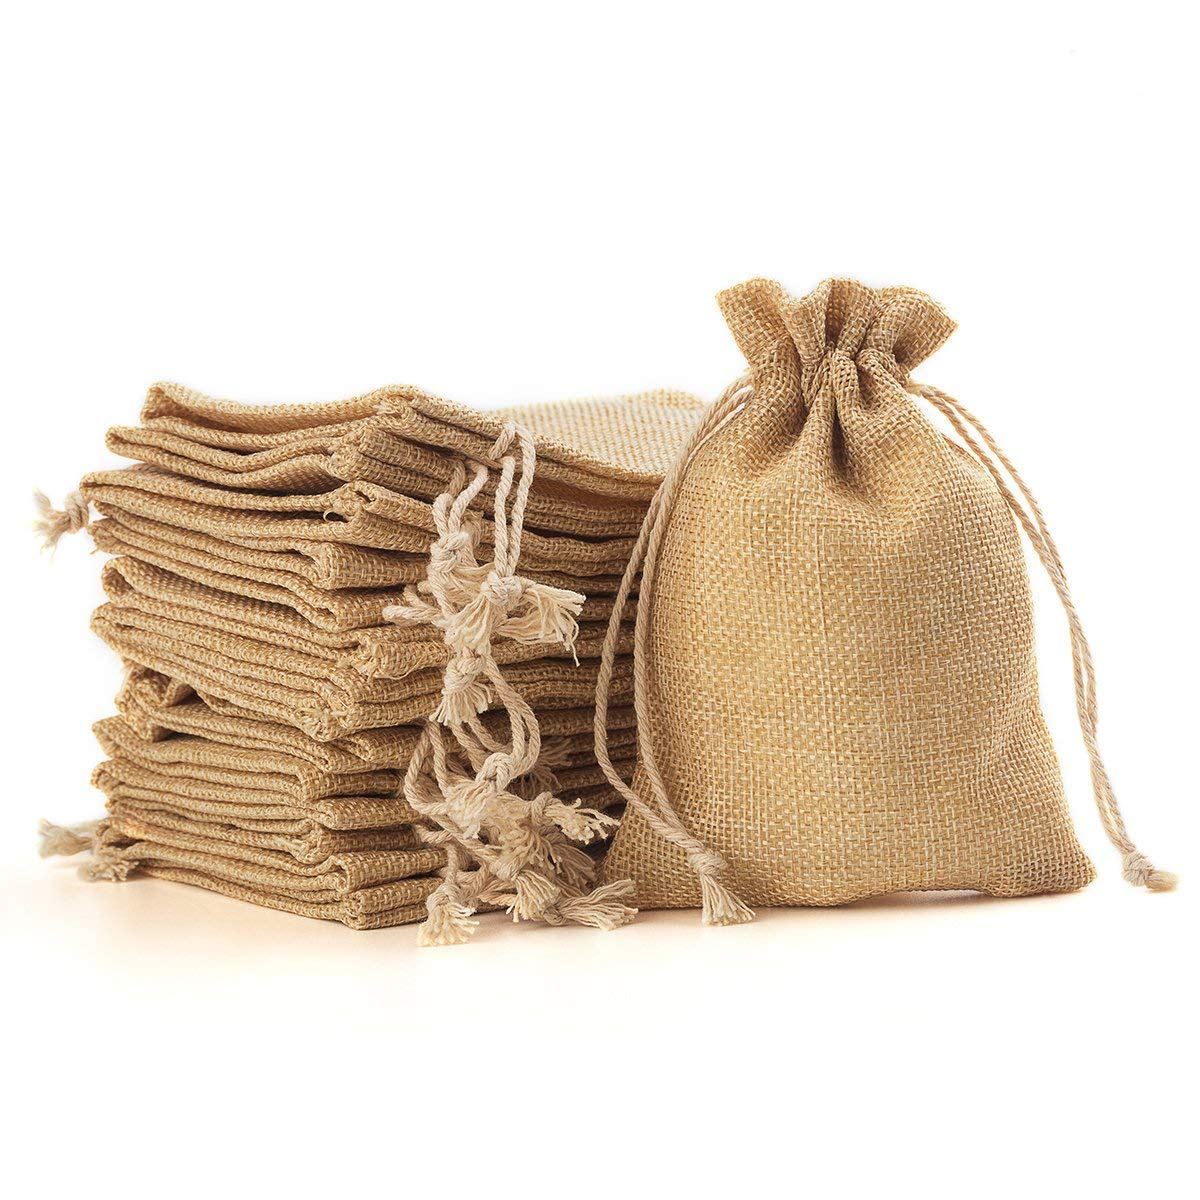 YUXIER 50 Burlap Bags with Drawstring Favor Bags Jewelry Bags Burlap 50 Treat Bags for Wedding Party,Arts /& Crafts Projects 5.3X3.7inch Flaxen Snacks Jewelry NumberoneBay Presents